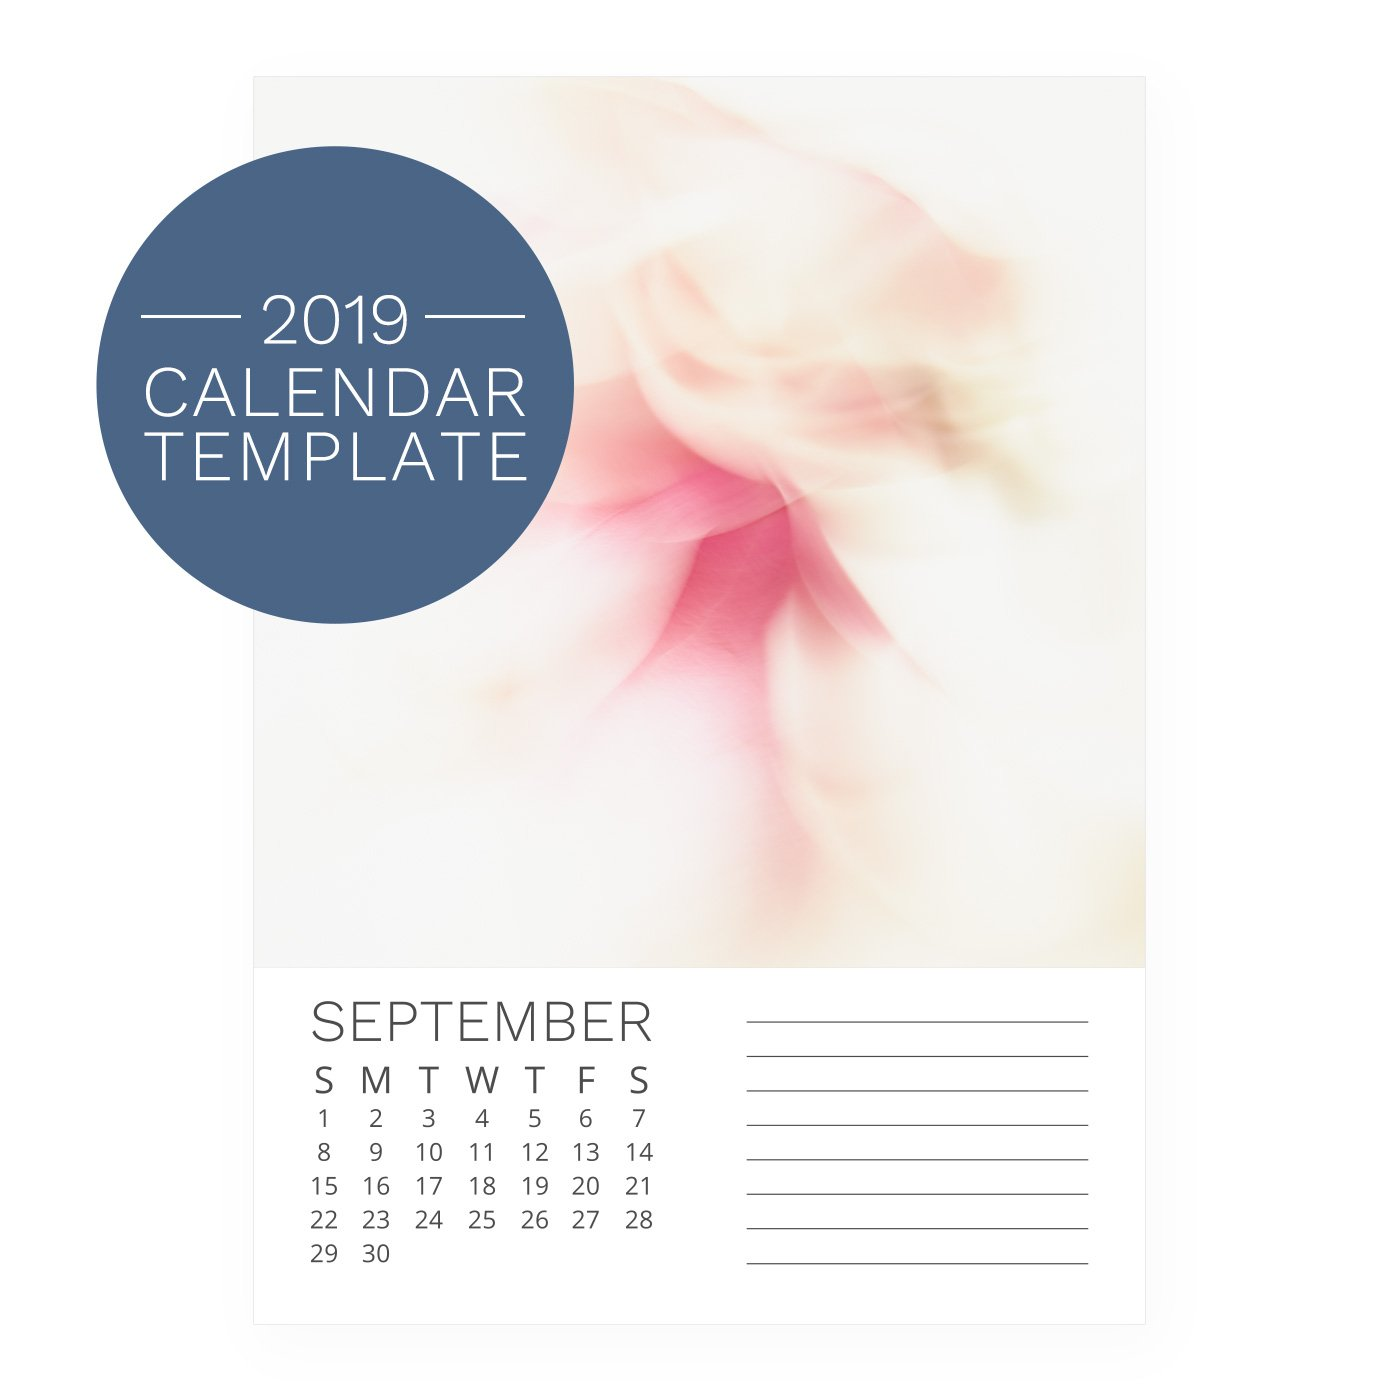 2019 calendar template printable diy download maxwellsz